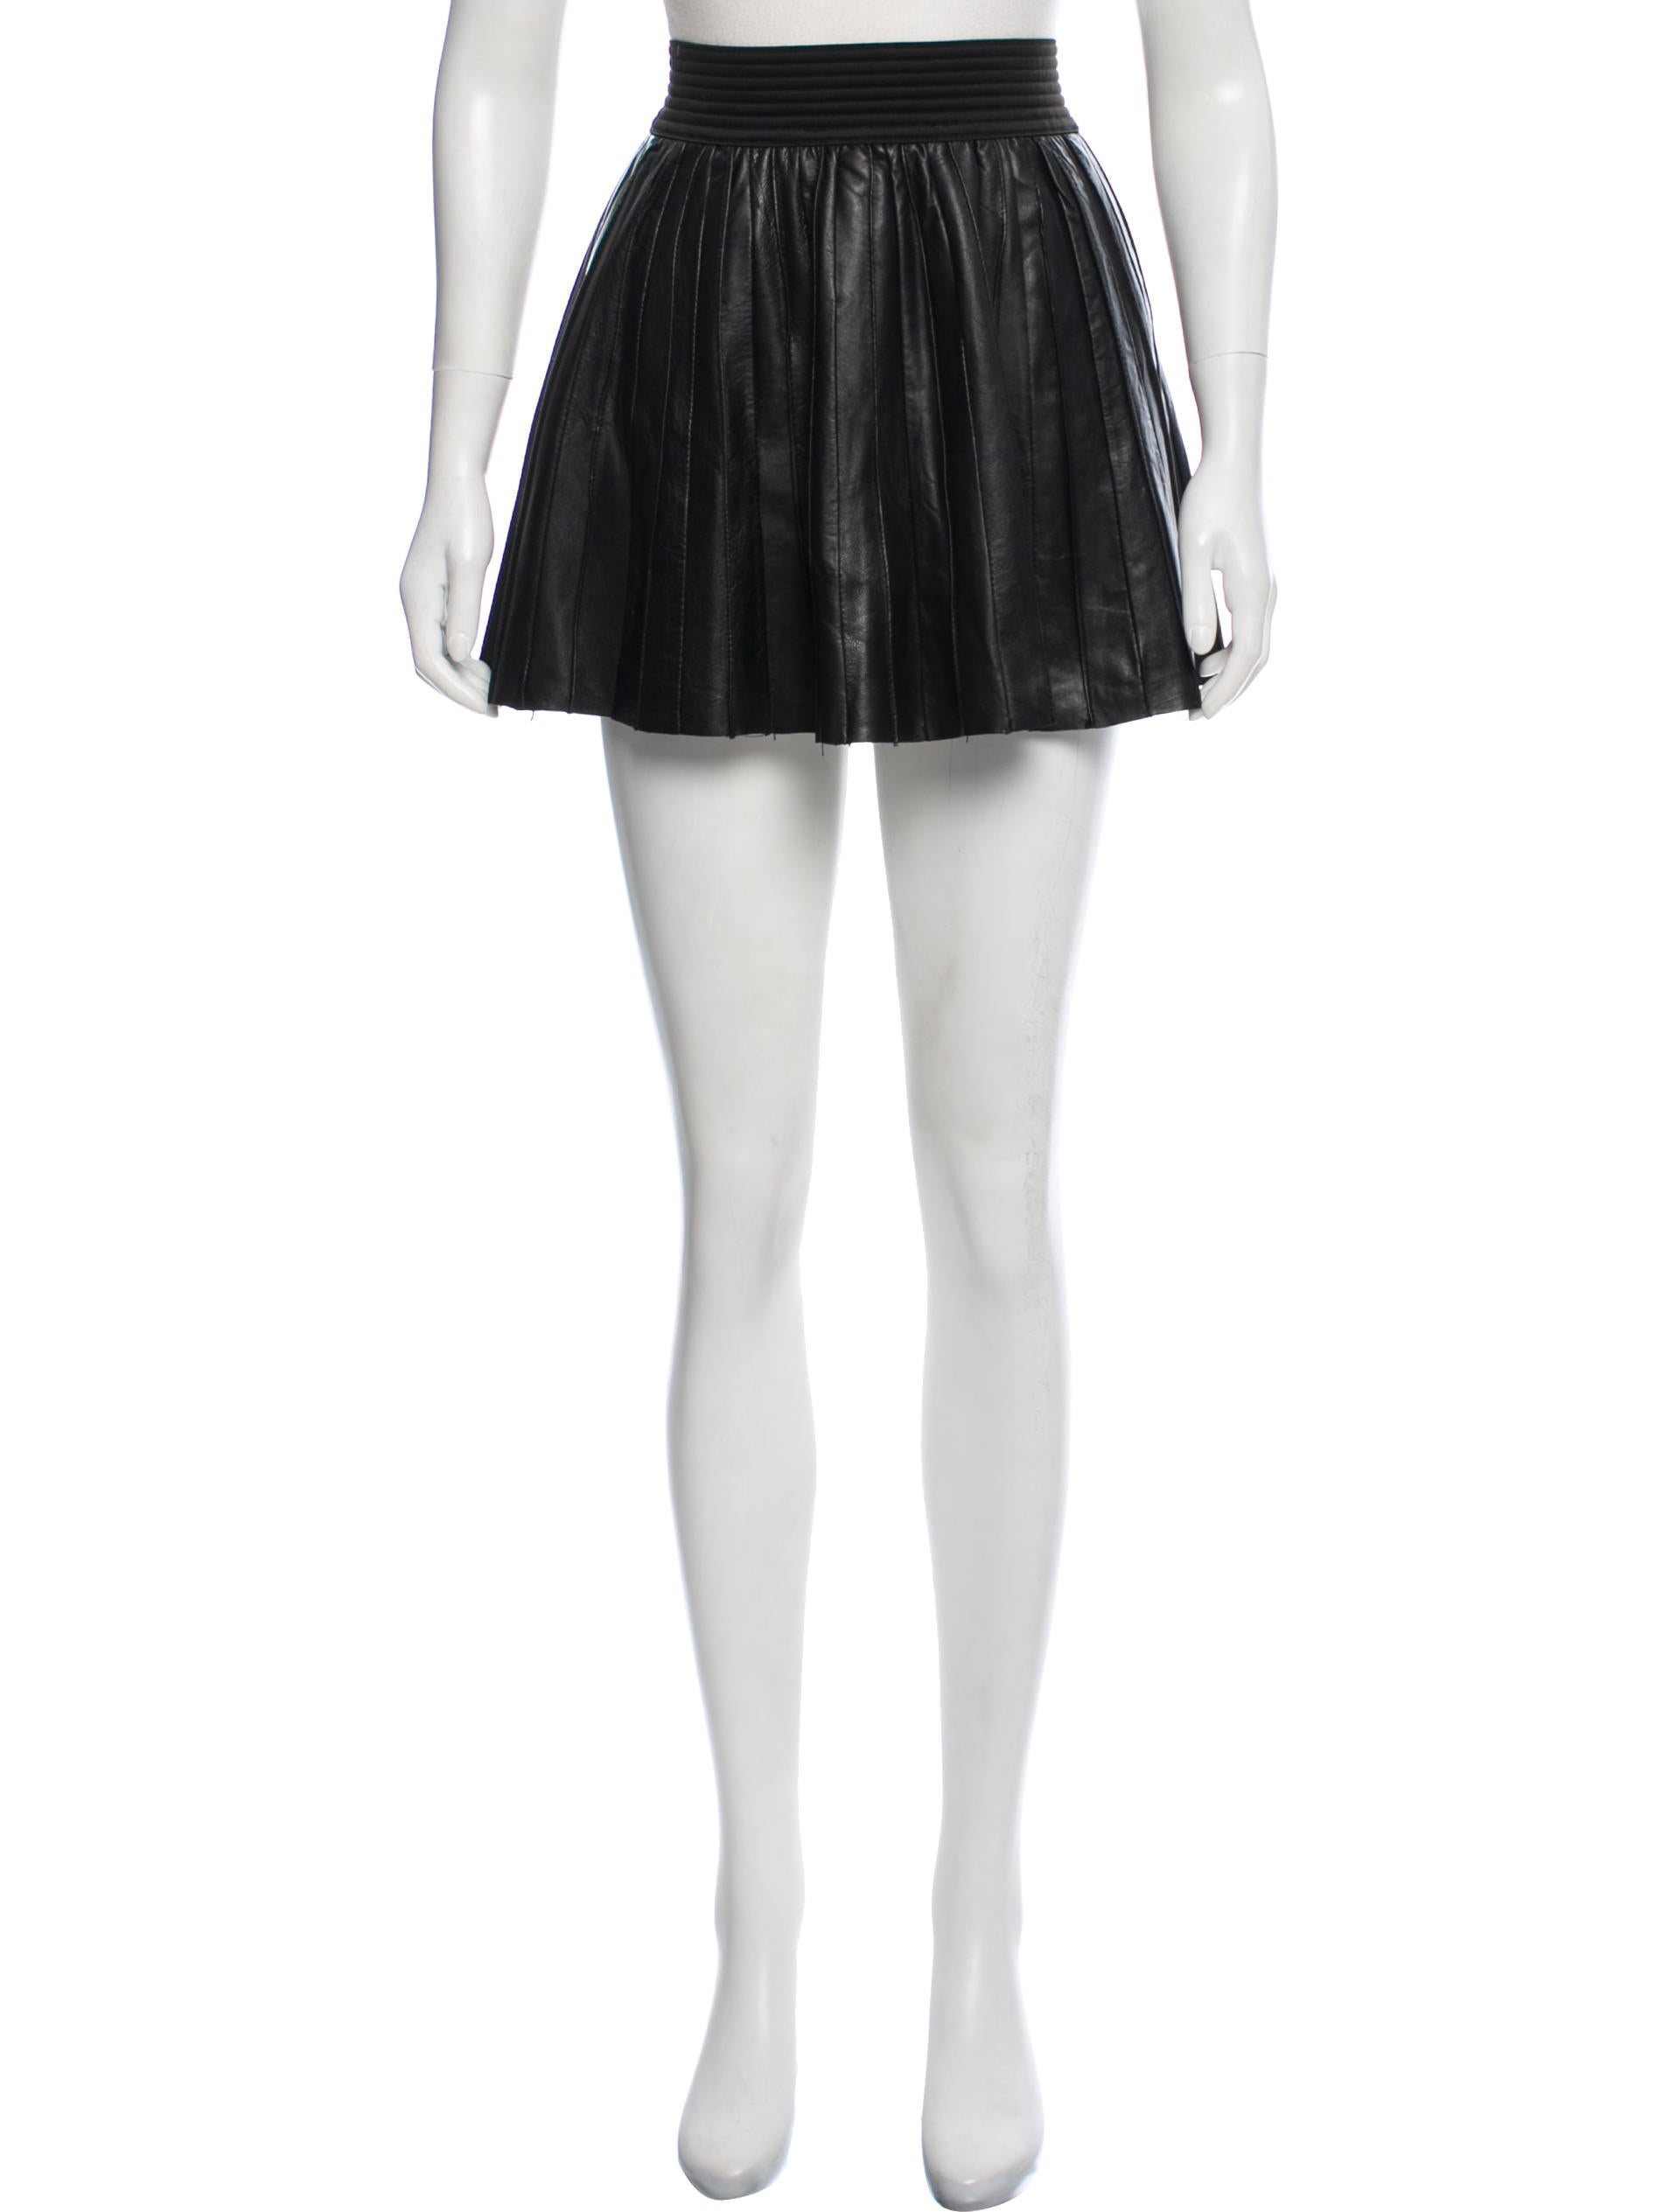 a4b03a56e2 Parker Pleated Leather Mini Skirt - Clothing - WPK27444 | The RealReal